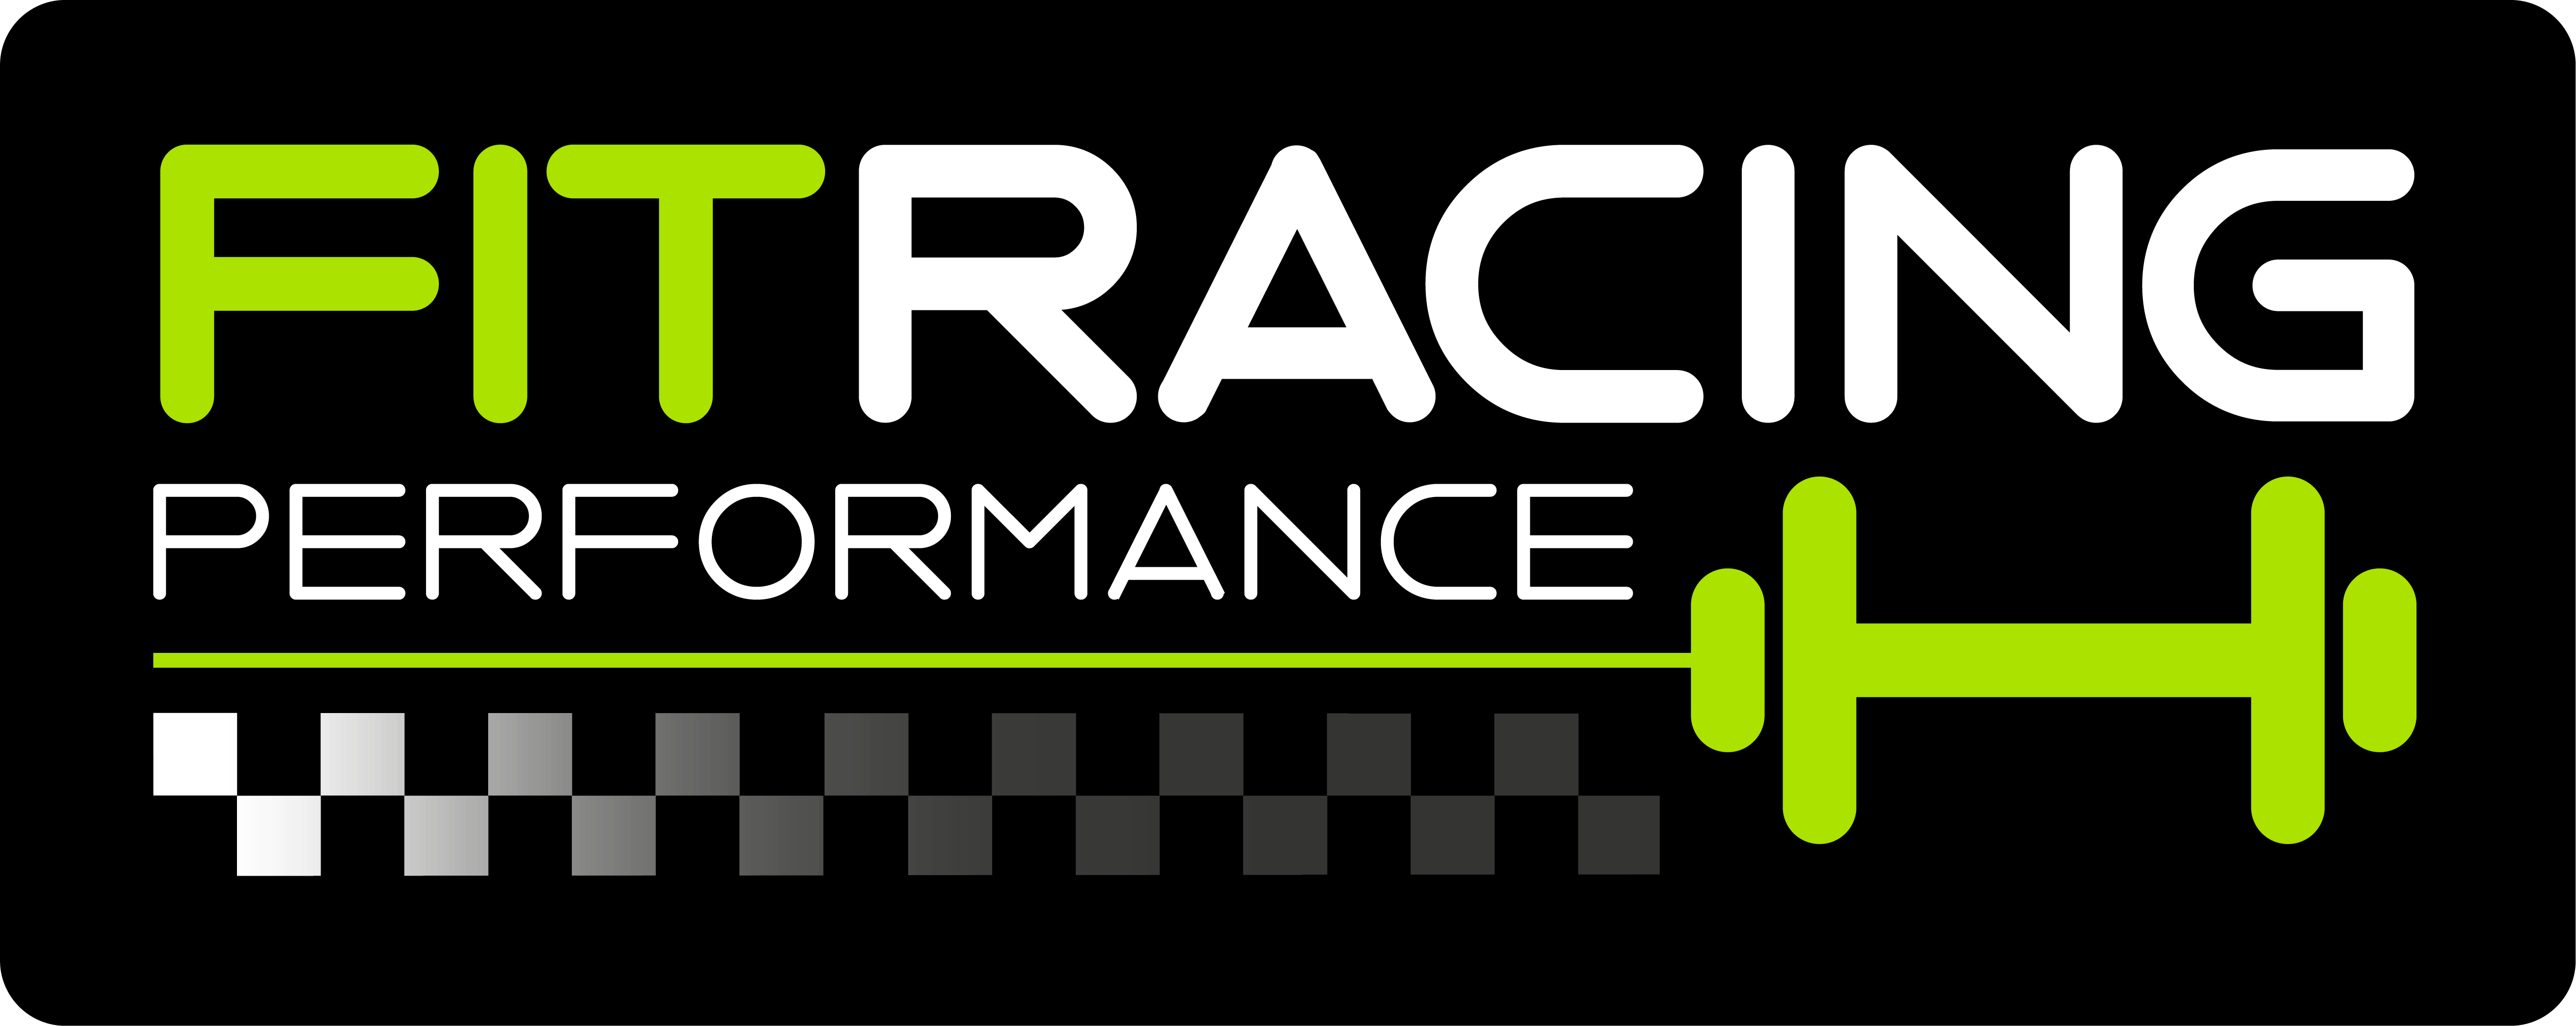 FIT RACING PERFORMANCE